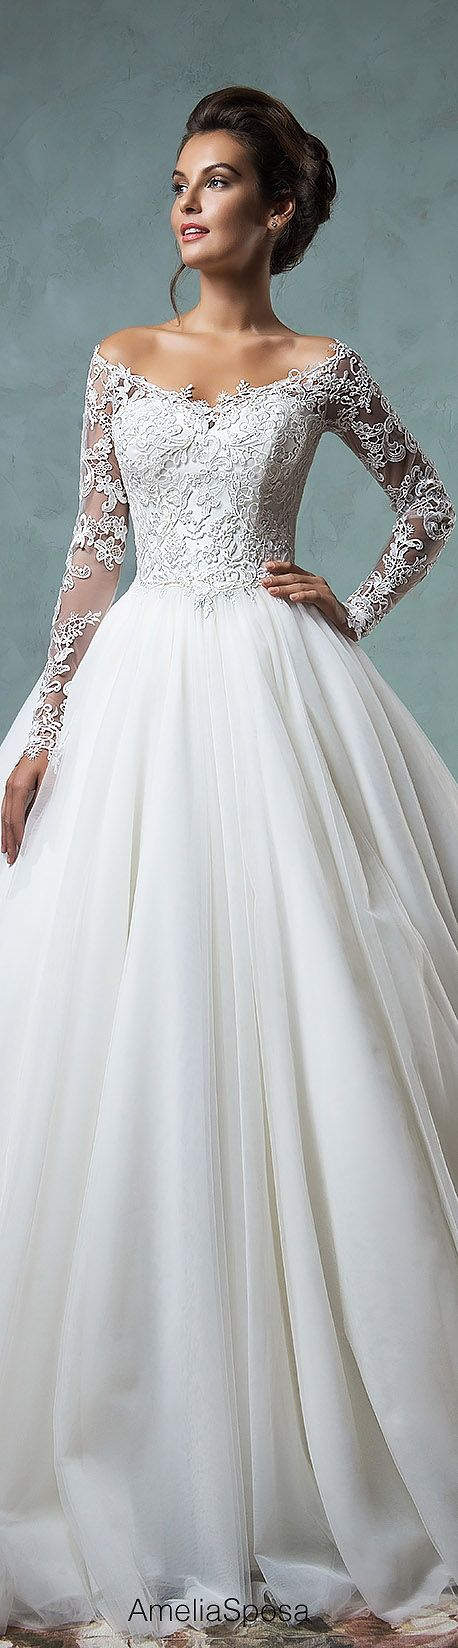 Popular  Lace Wedding Dresses That You Will Absolutely Love